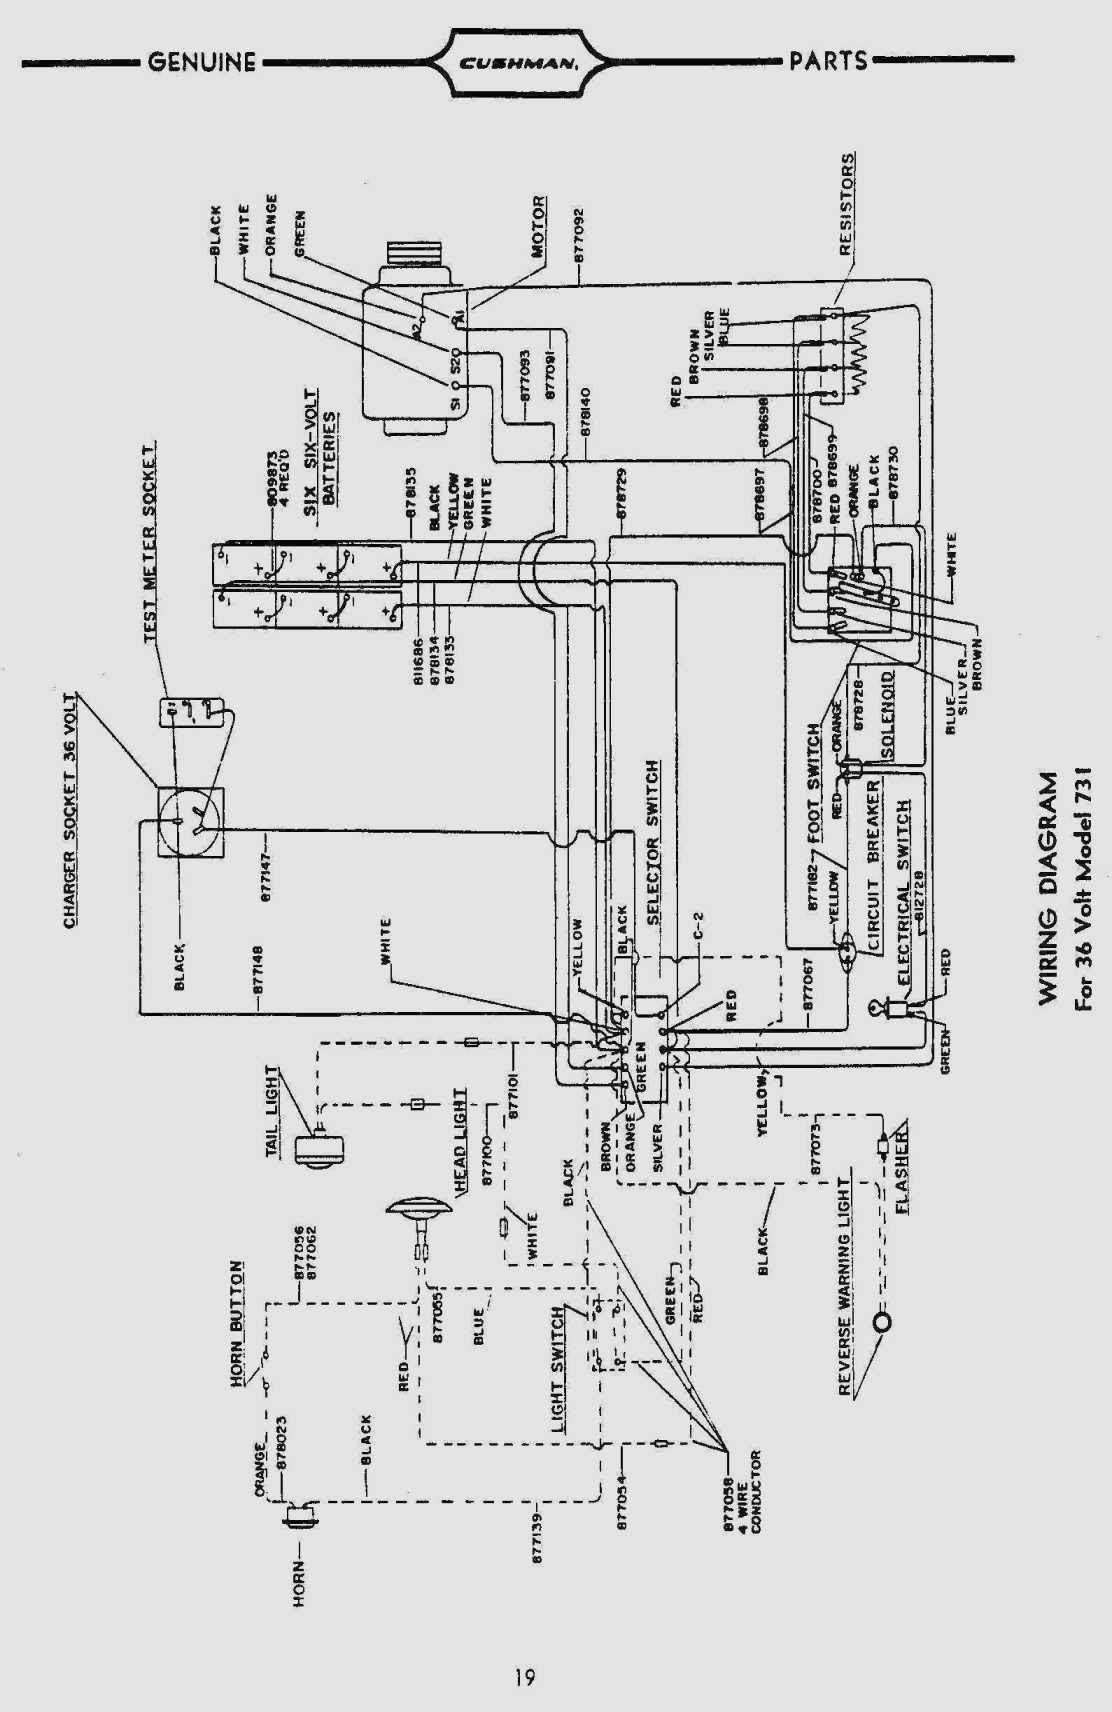 1989 Ezgo Marathon Golf Cart Wiring Diagram